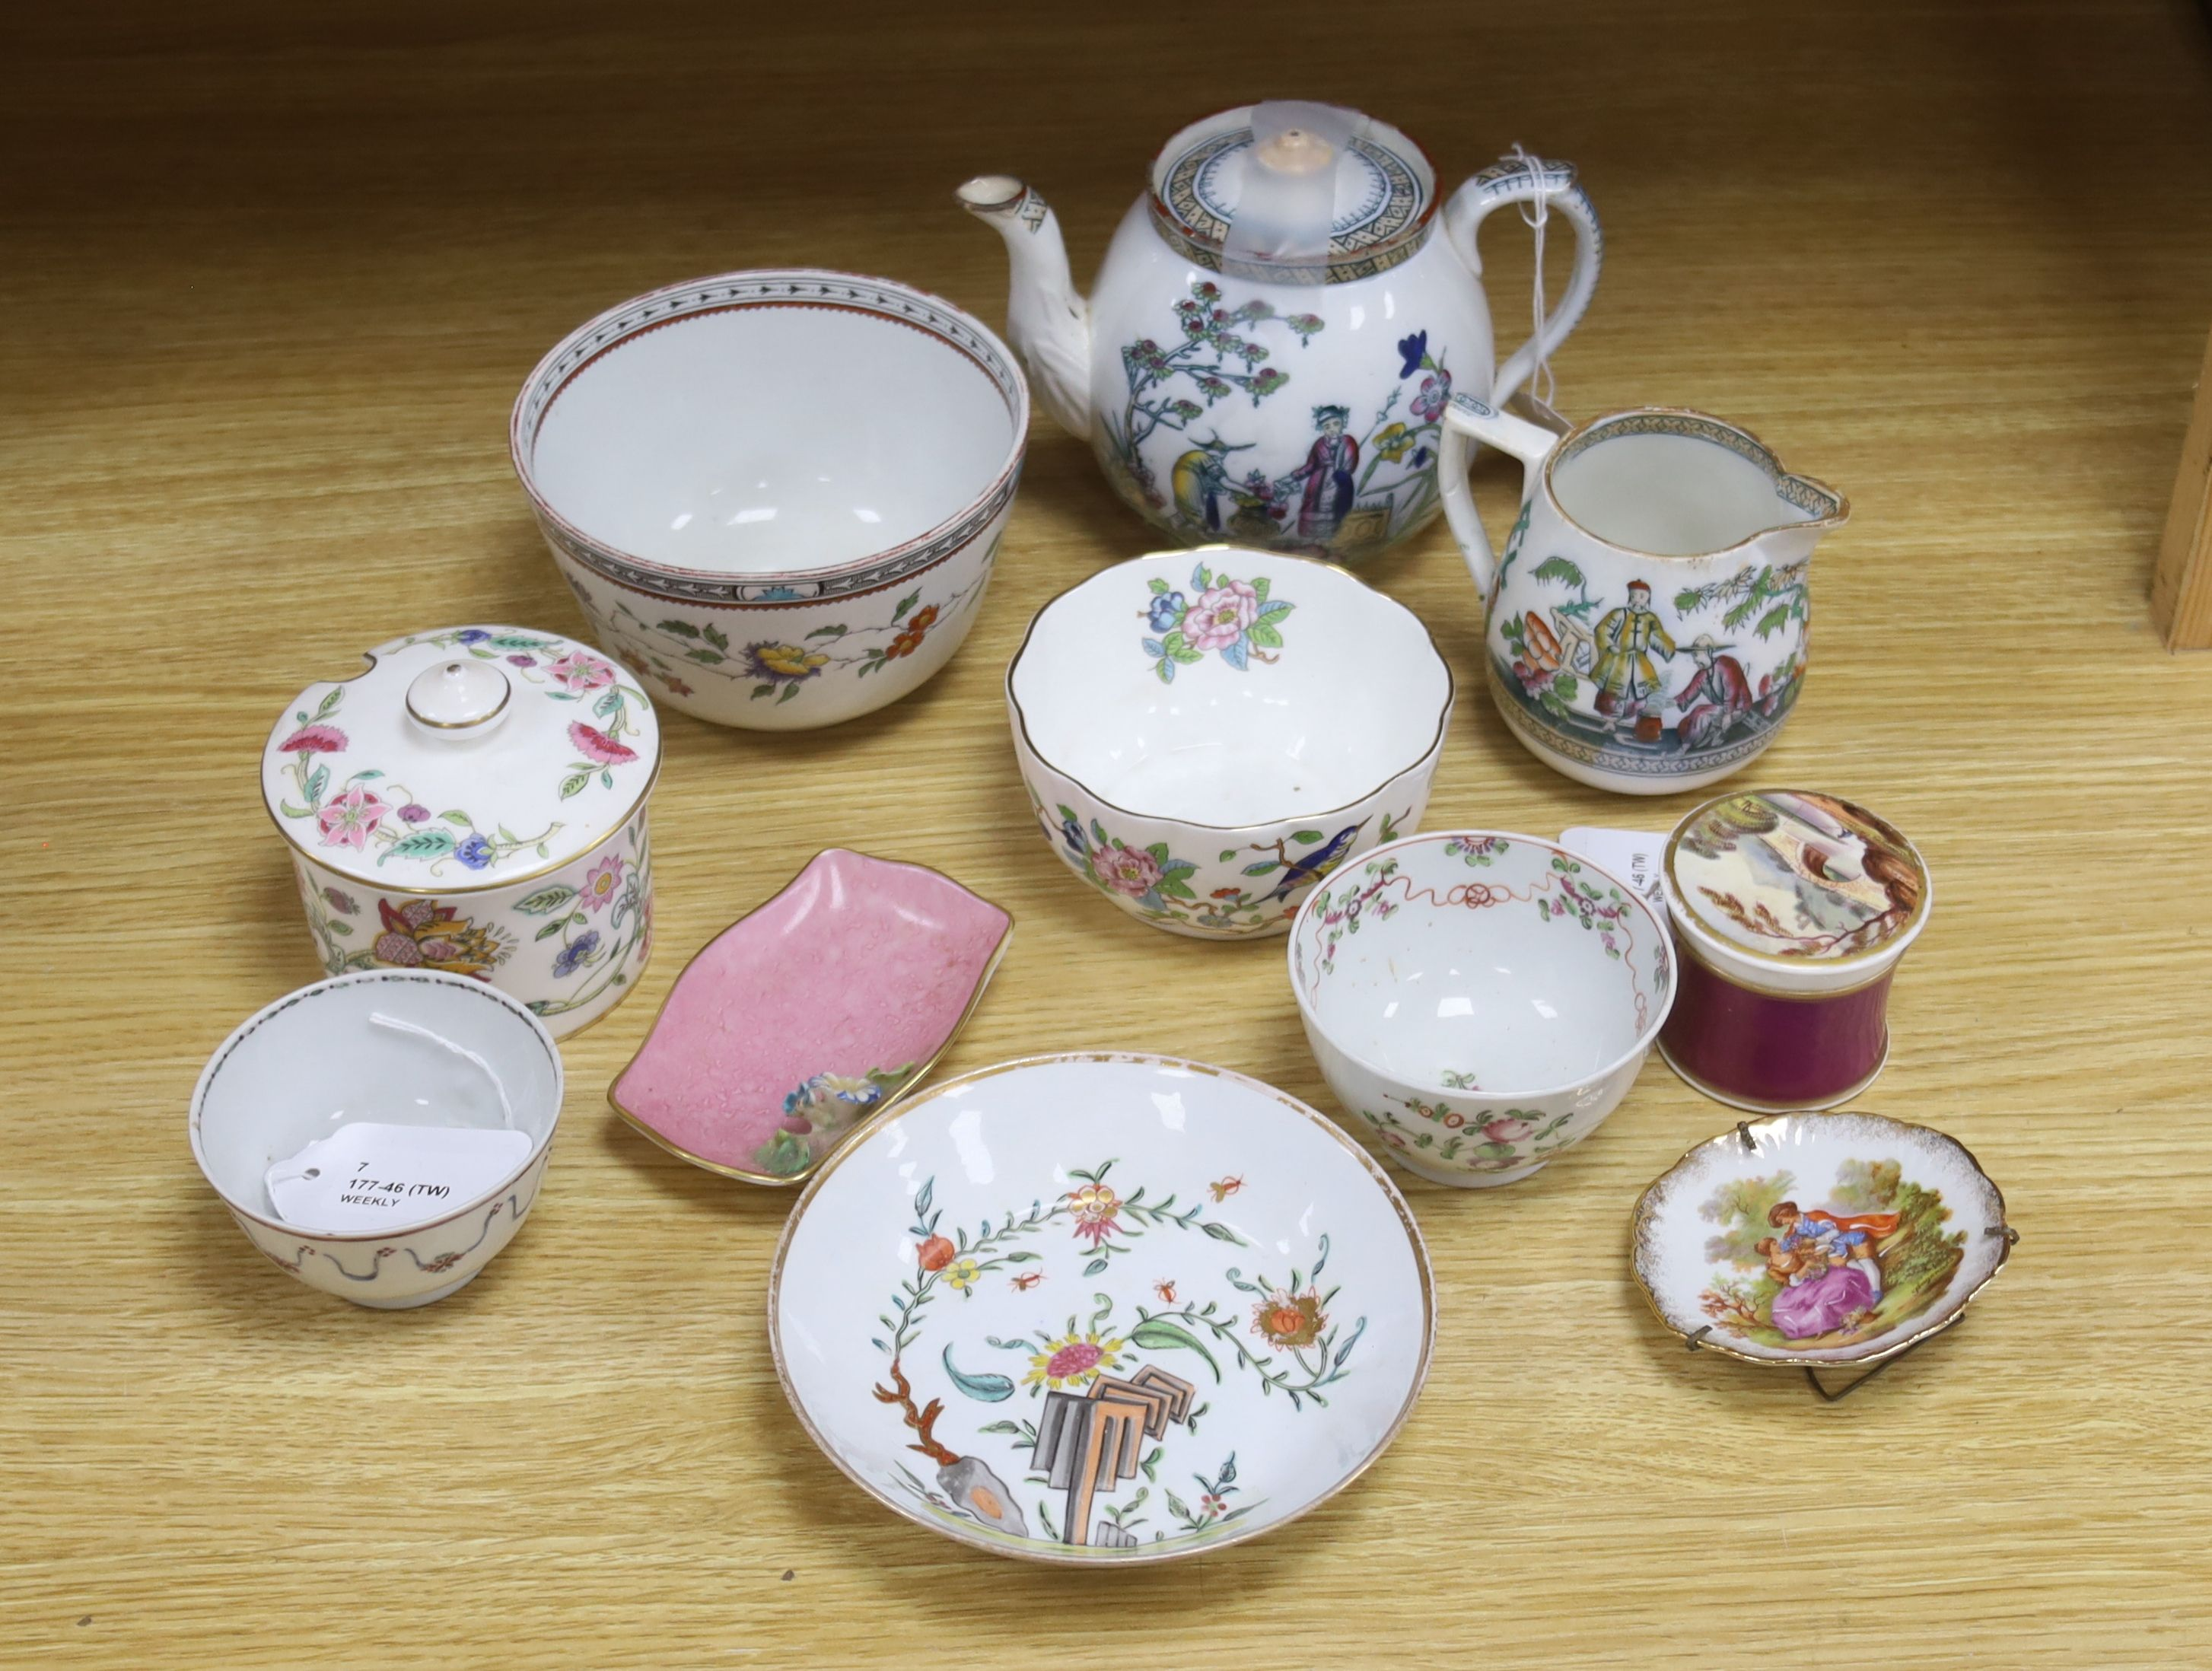 A small collection of English and Continental ceramics, including two 18th century tea bowlswith